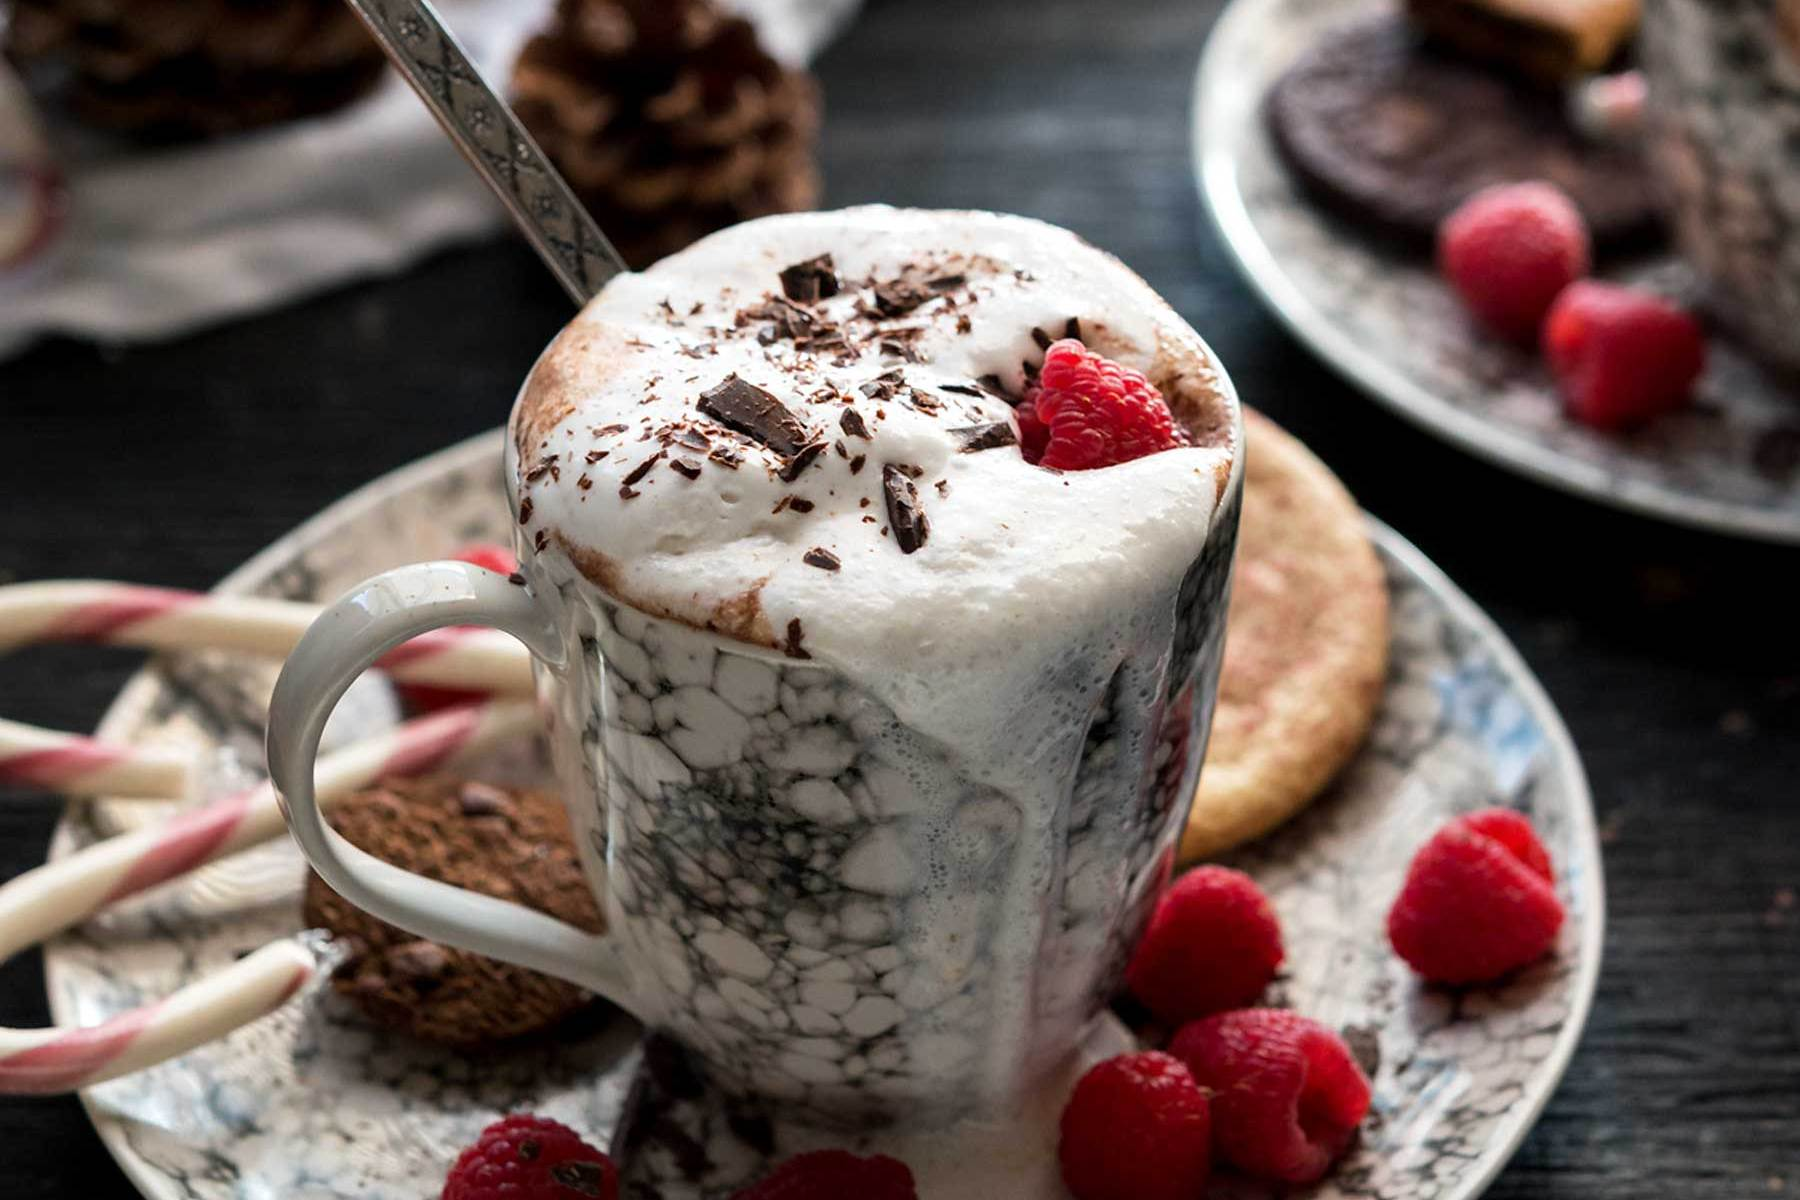 If you're looking for the perfect, warming beverage for cool, winter nights, look no further than this dairy-free, sugar-free Raspberry Hot Cocoa! #vegan #lenoxusa #healthy #glutenfree